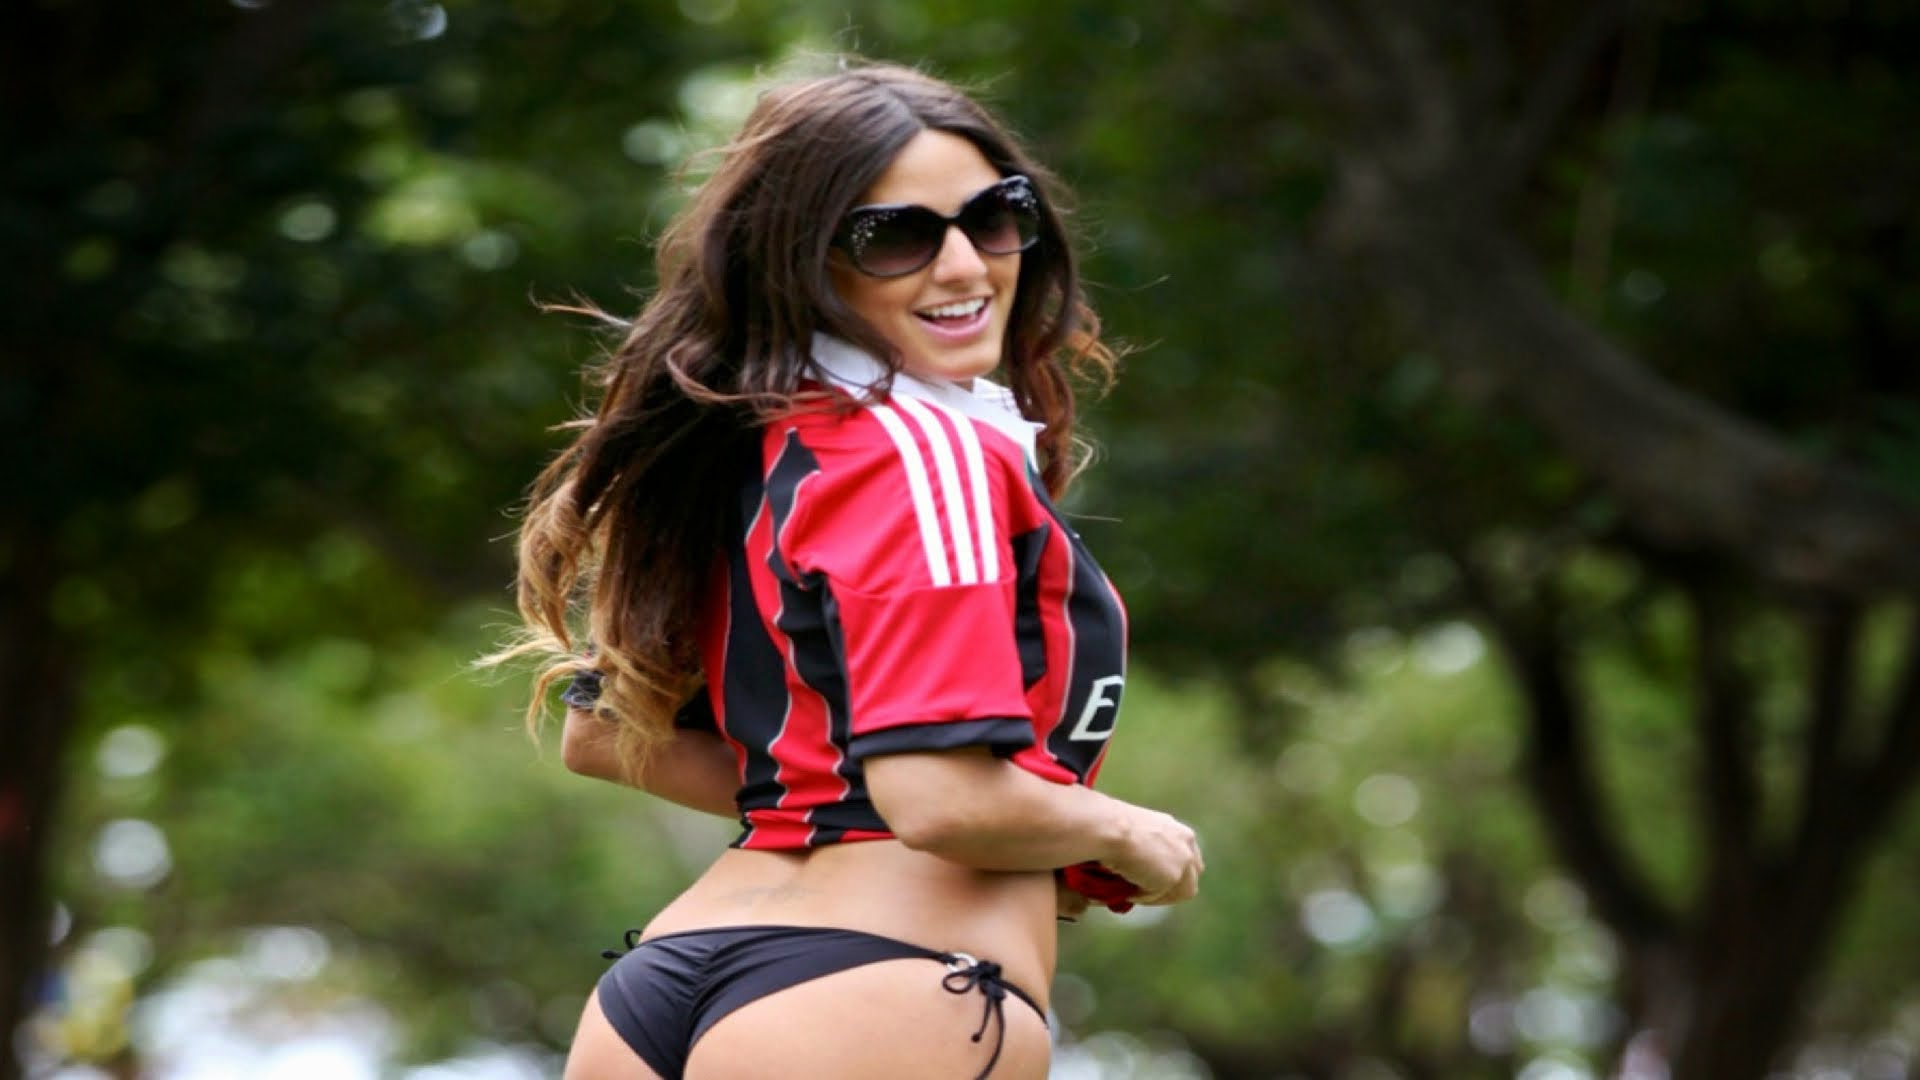 Soccer Girls Wallpaper Free: Best HD Image Sexy Soccer Wallpapers 2